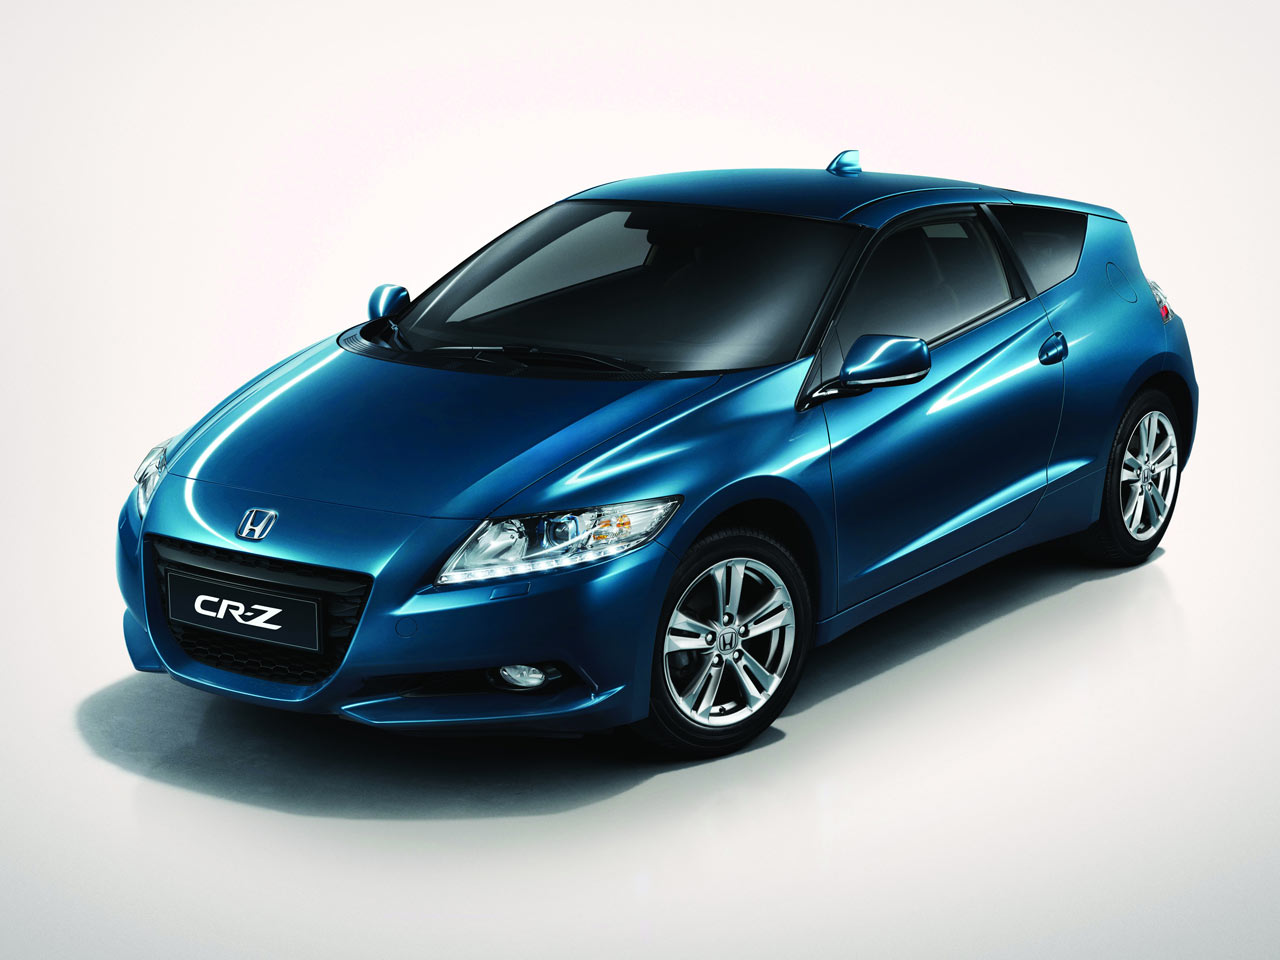 Honda Cr Z Car Body Design